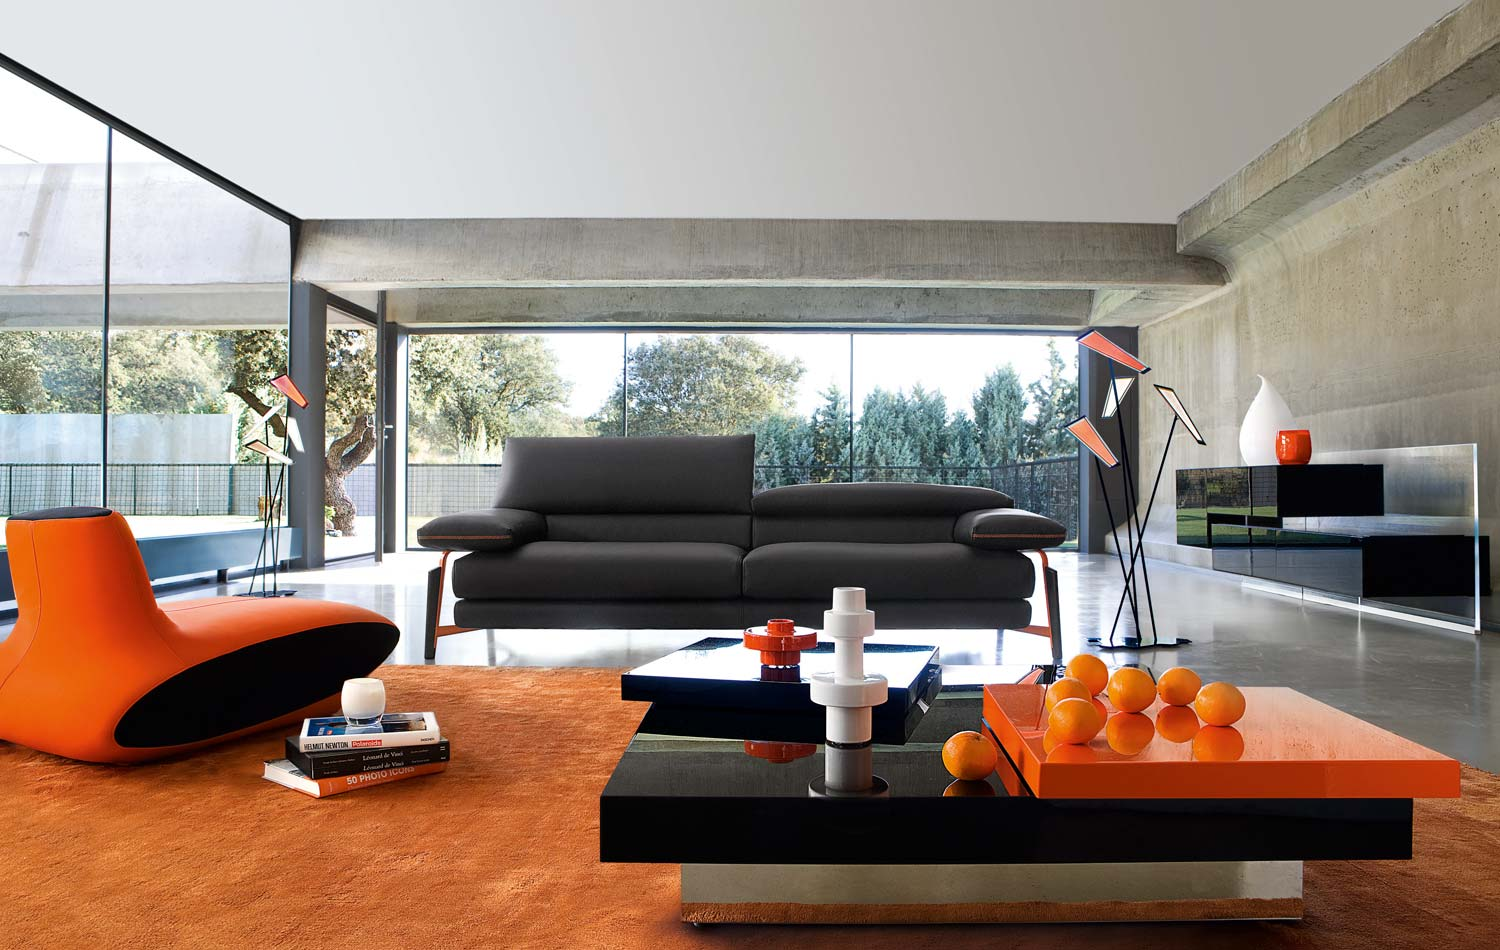 Living Room Inspiration 120 Modern Sofas By Roche Bobois Part 2 3 Architecture Design